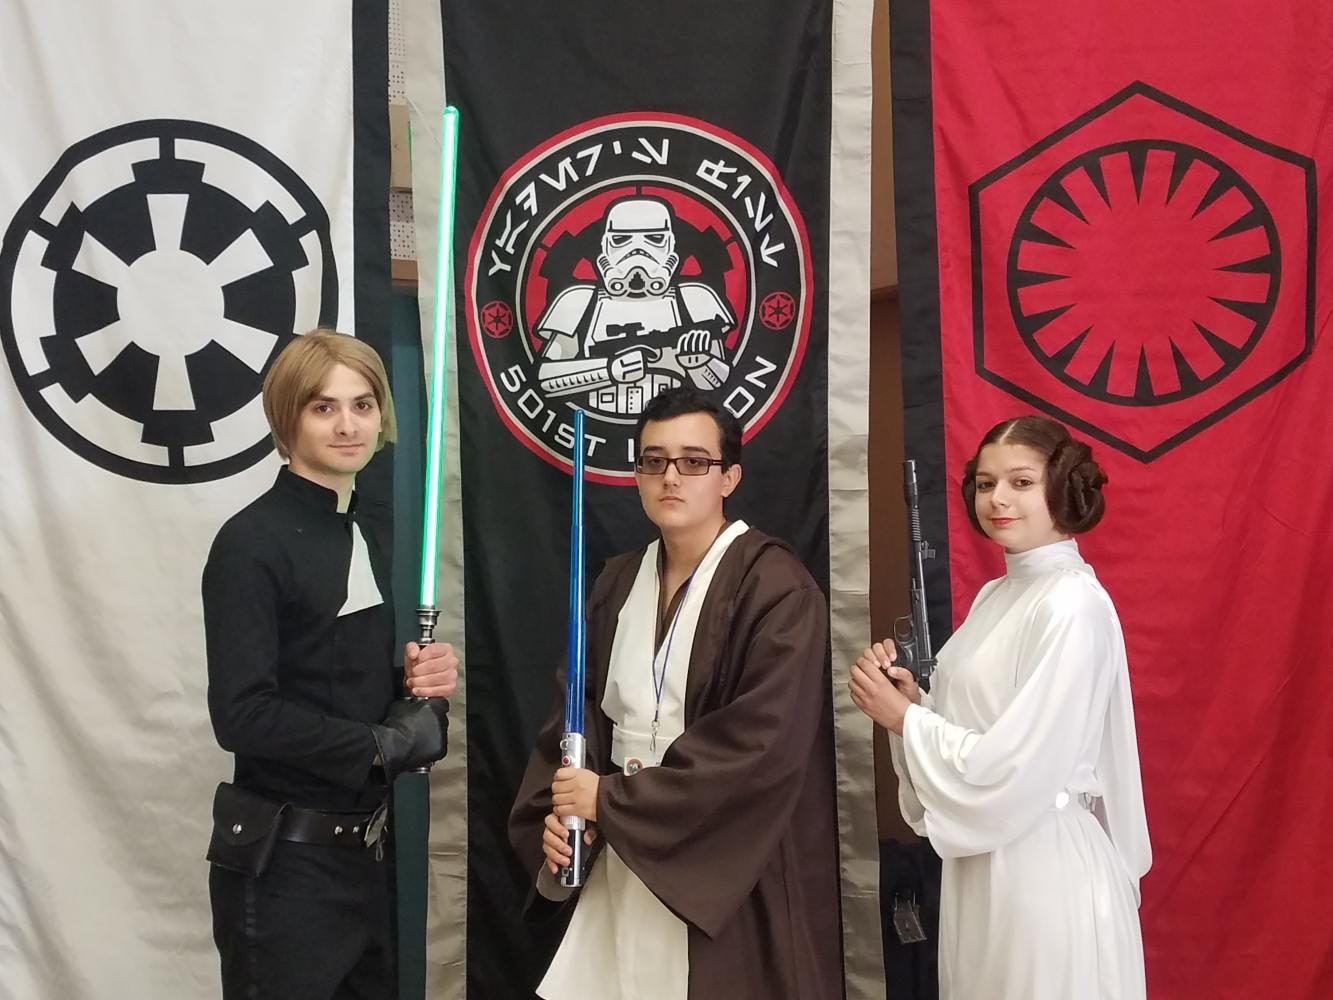 Staff writer Steven Guzman poses in costume with members of the 501st crew.